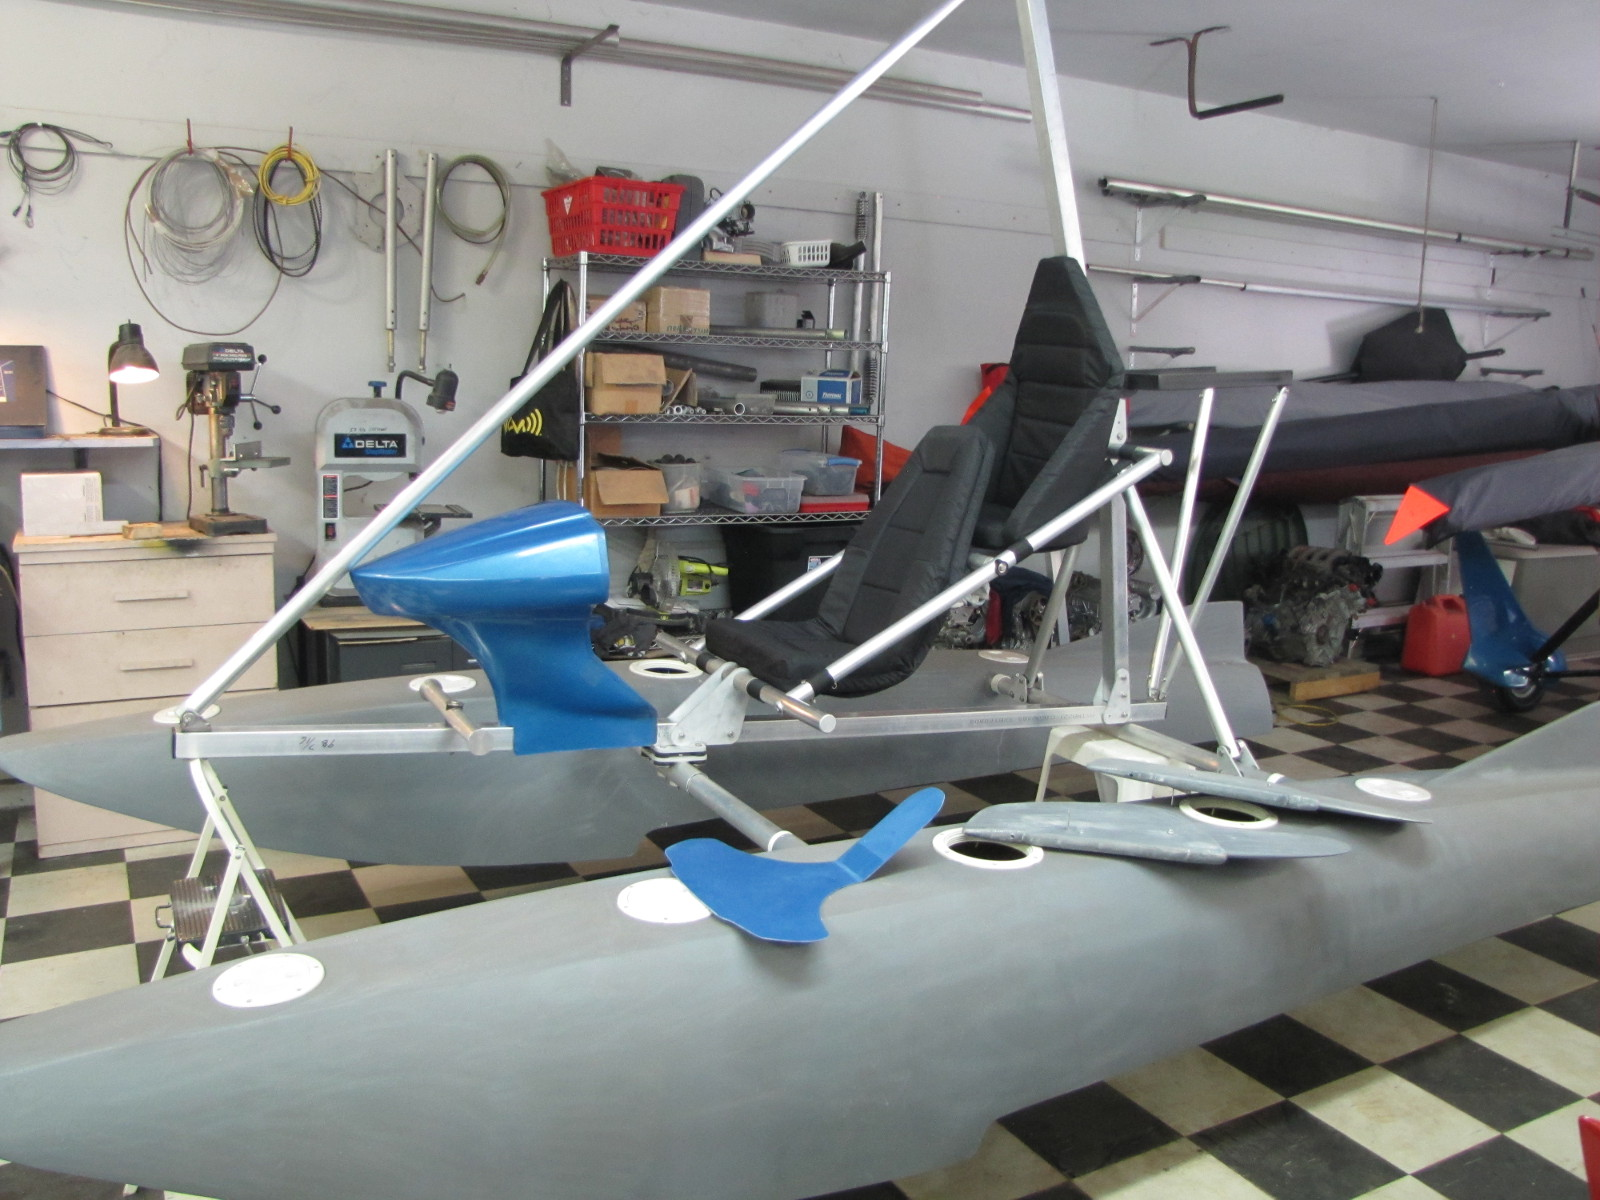 Air Trikes: Completed trikes for sale